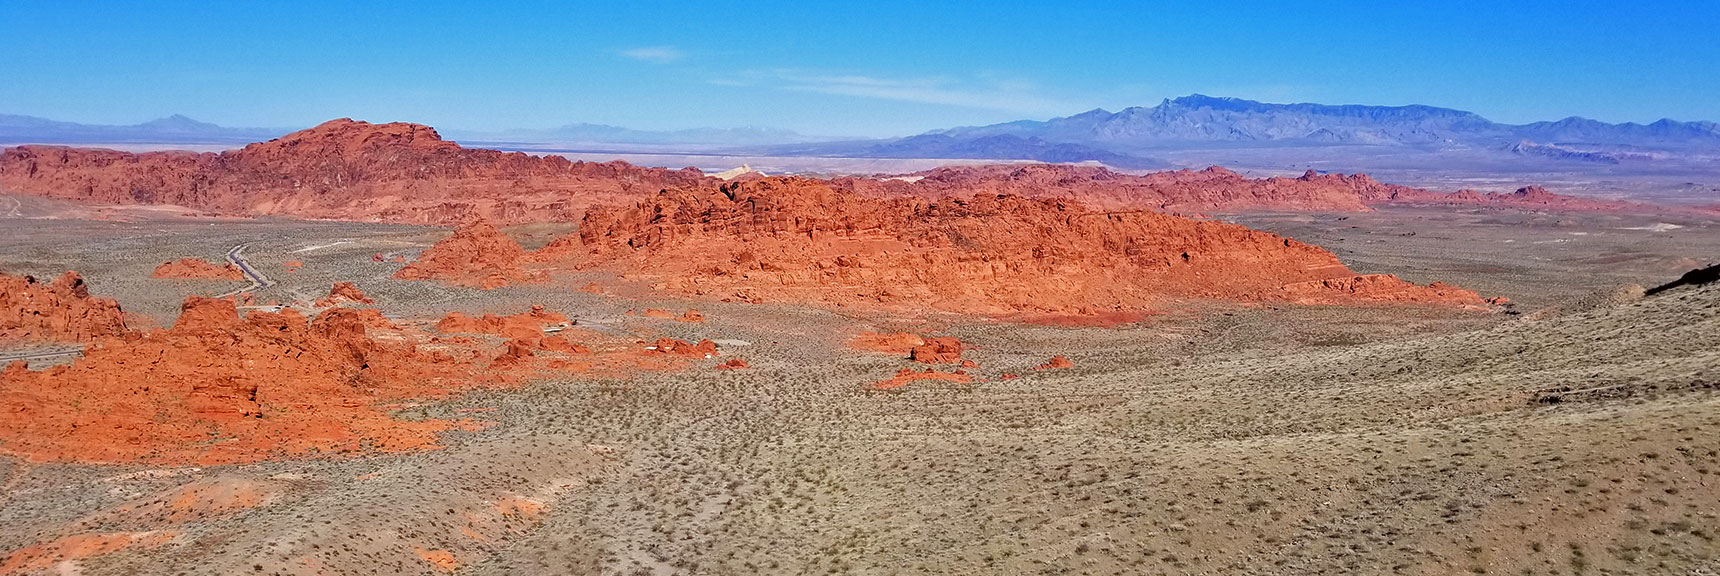 View Toward the Eastern End of the Park | Valley of Fire State Park, Nevada Panorama